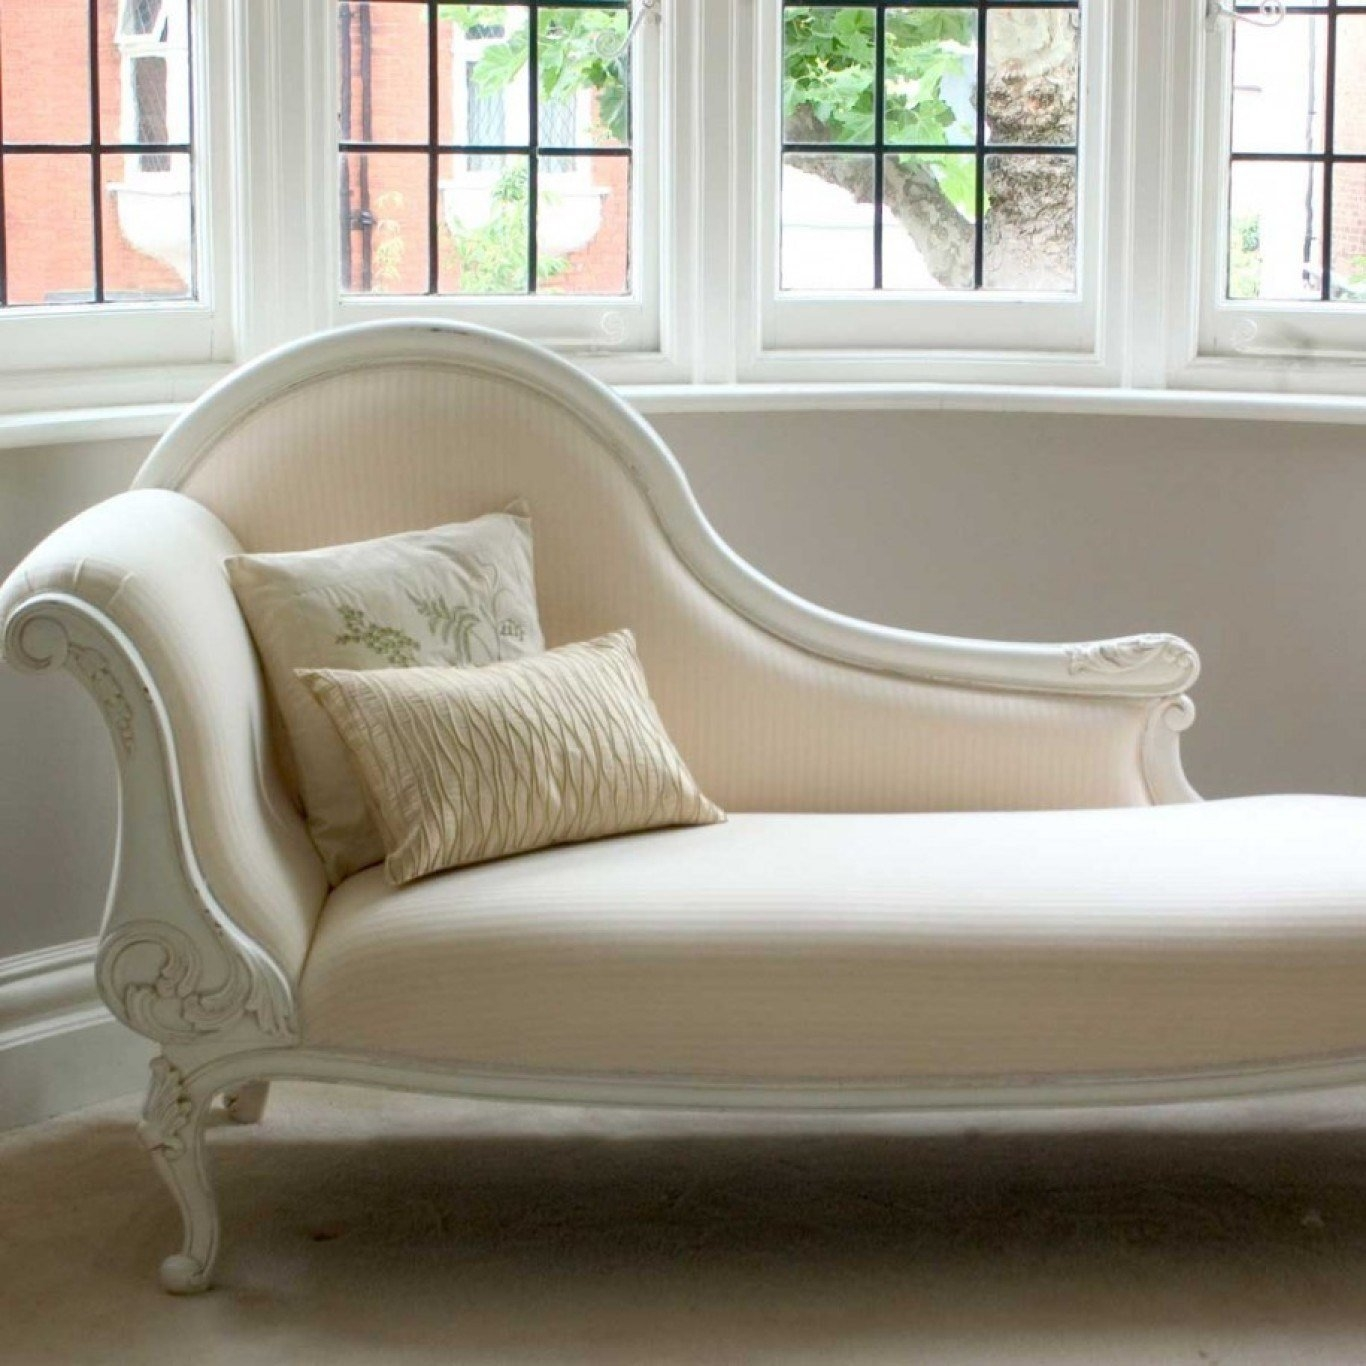 Beau Chaise For Bedroom